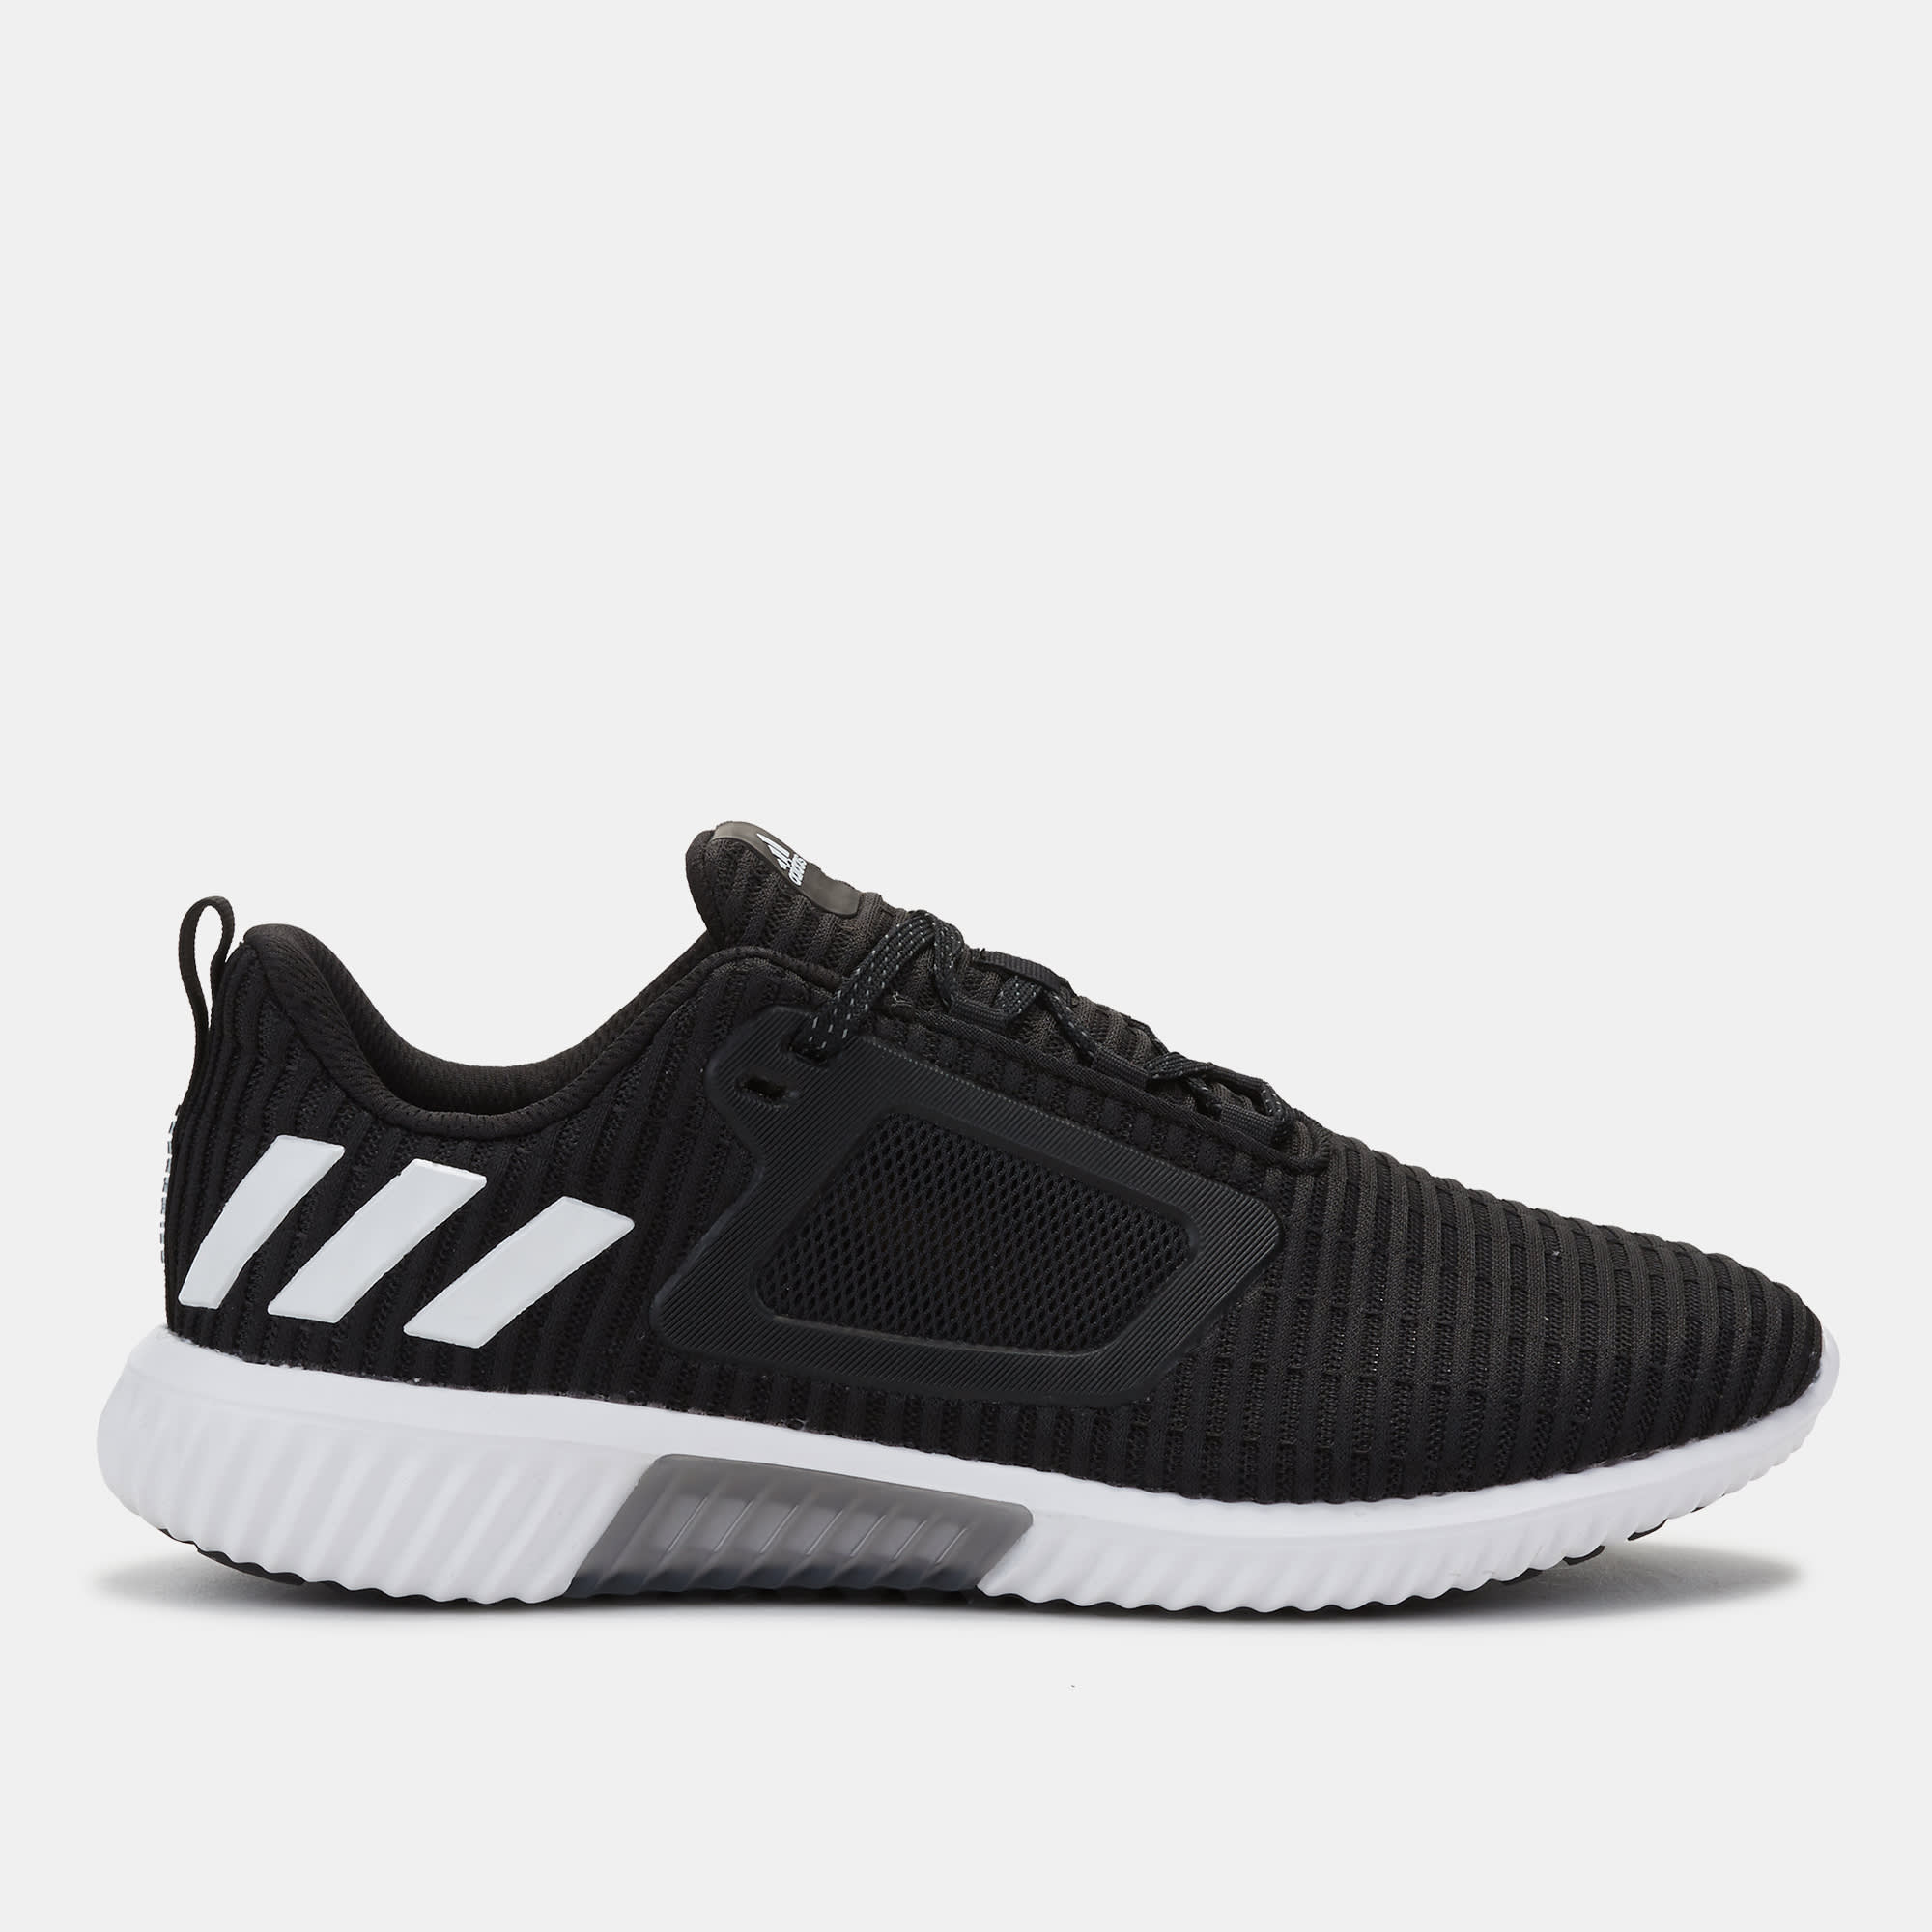 detailed look b872a 2761c adidas climacool